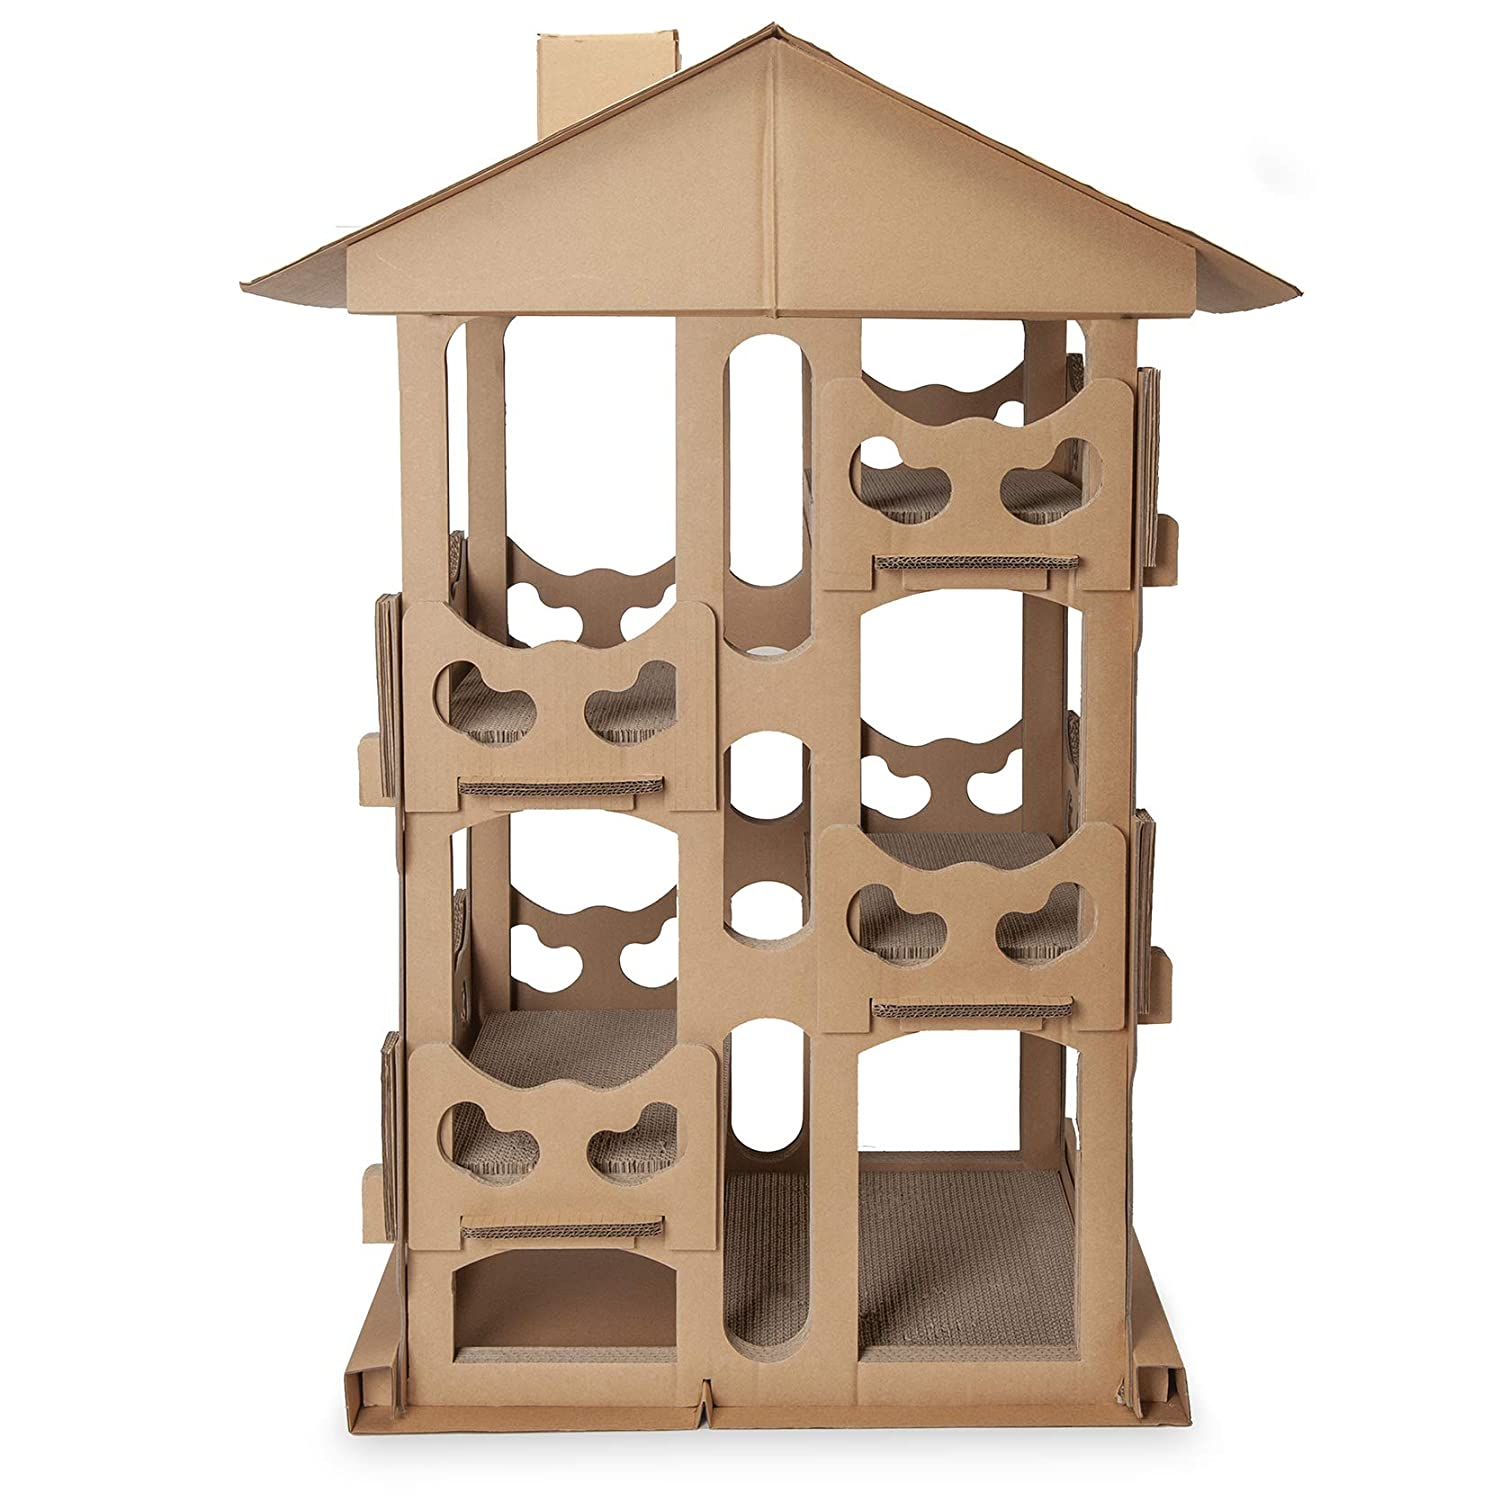 Furhaven Pet Cat Furniture | Corrugated Cat Scratcher Cardboard & Pet House Tower Condo Apartment w/ Catnip for Cats & Kittens - Available in Multiple Styles